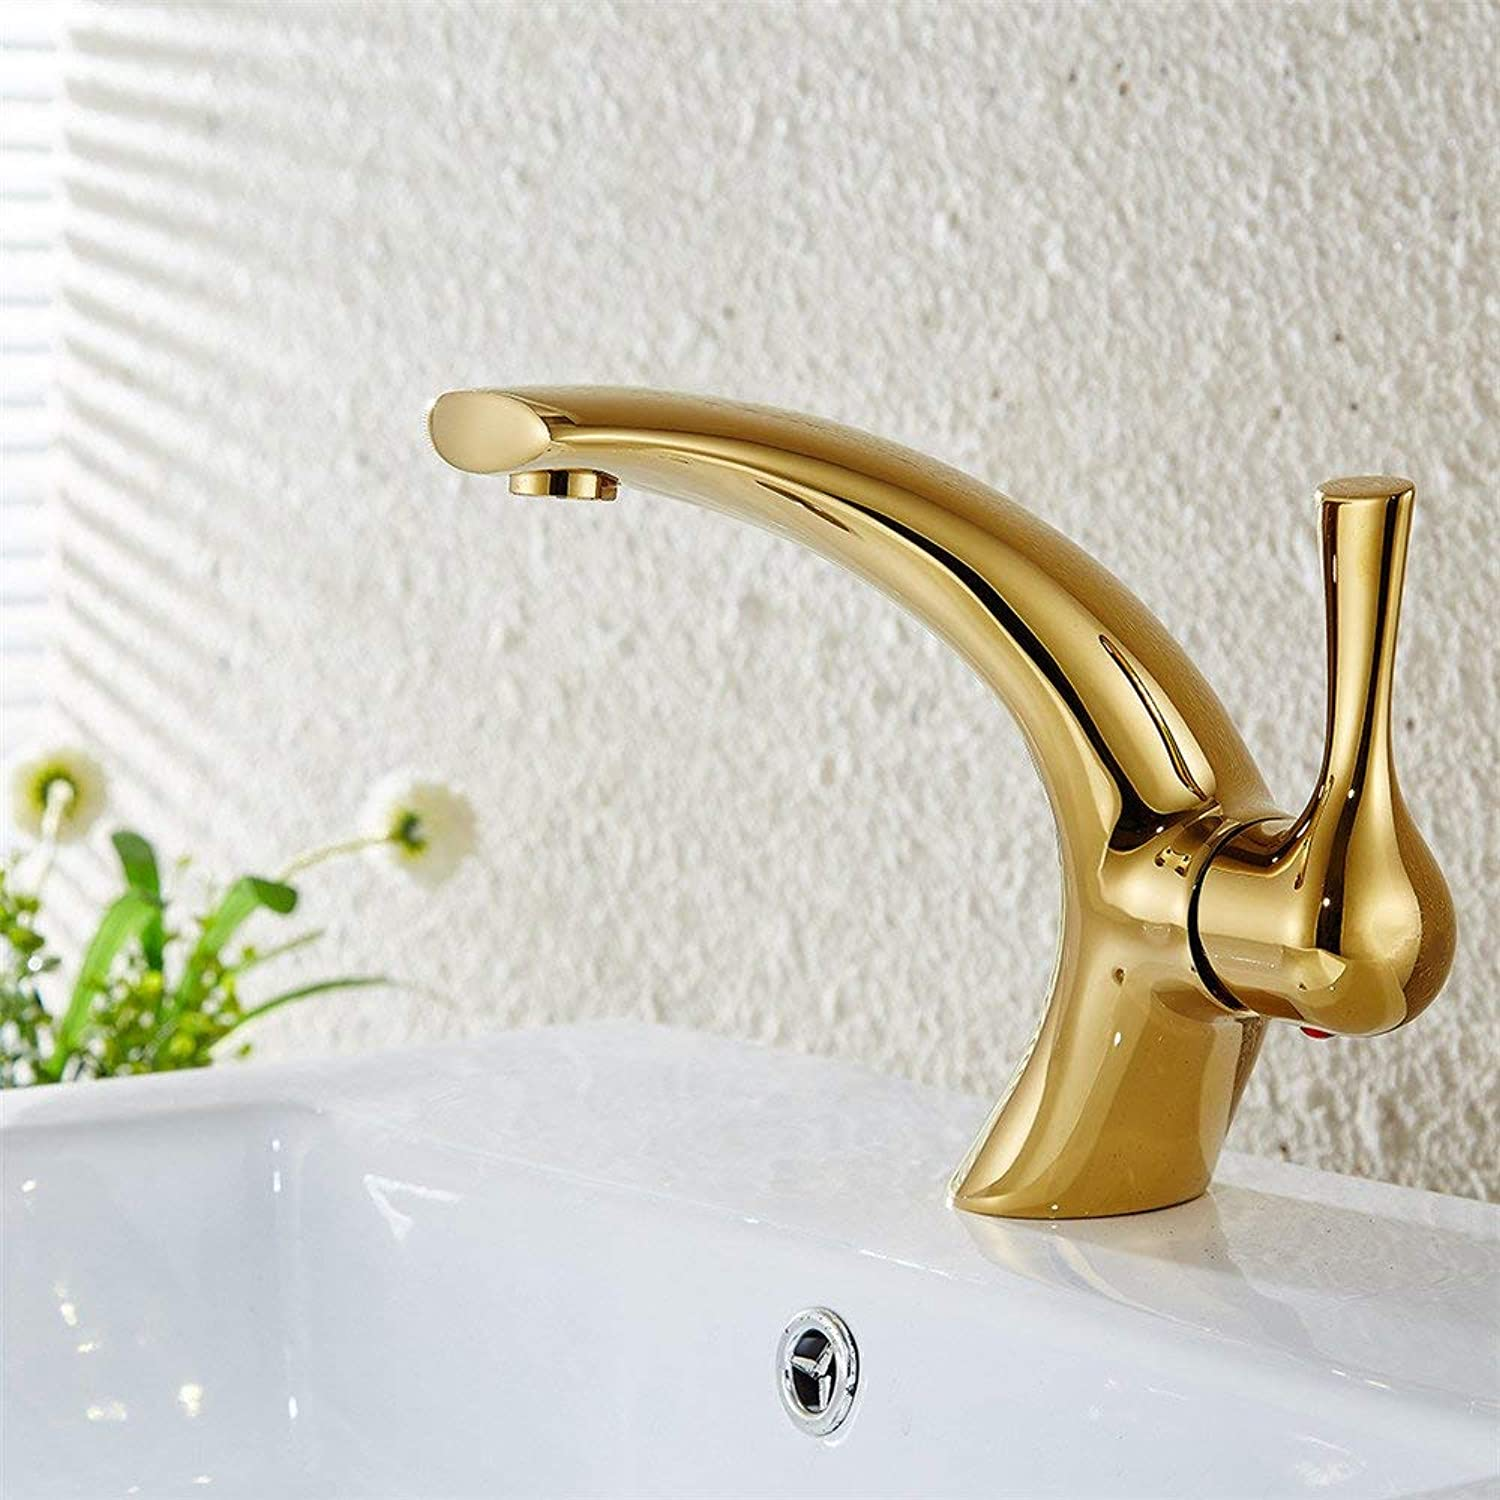 SEEKSUNG Kitchen Sink Taps The Copper gold Bathroom Basin Mixer Single Hole Cold and Hot-Water Faucet G1 2